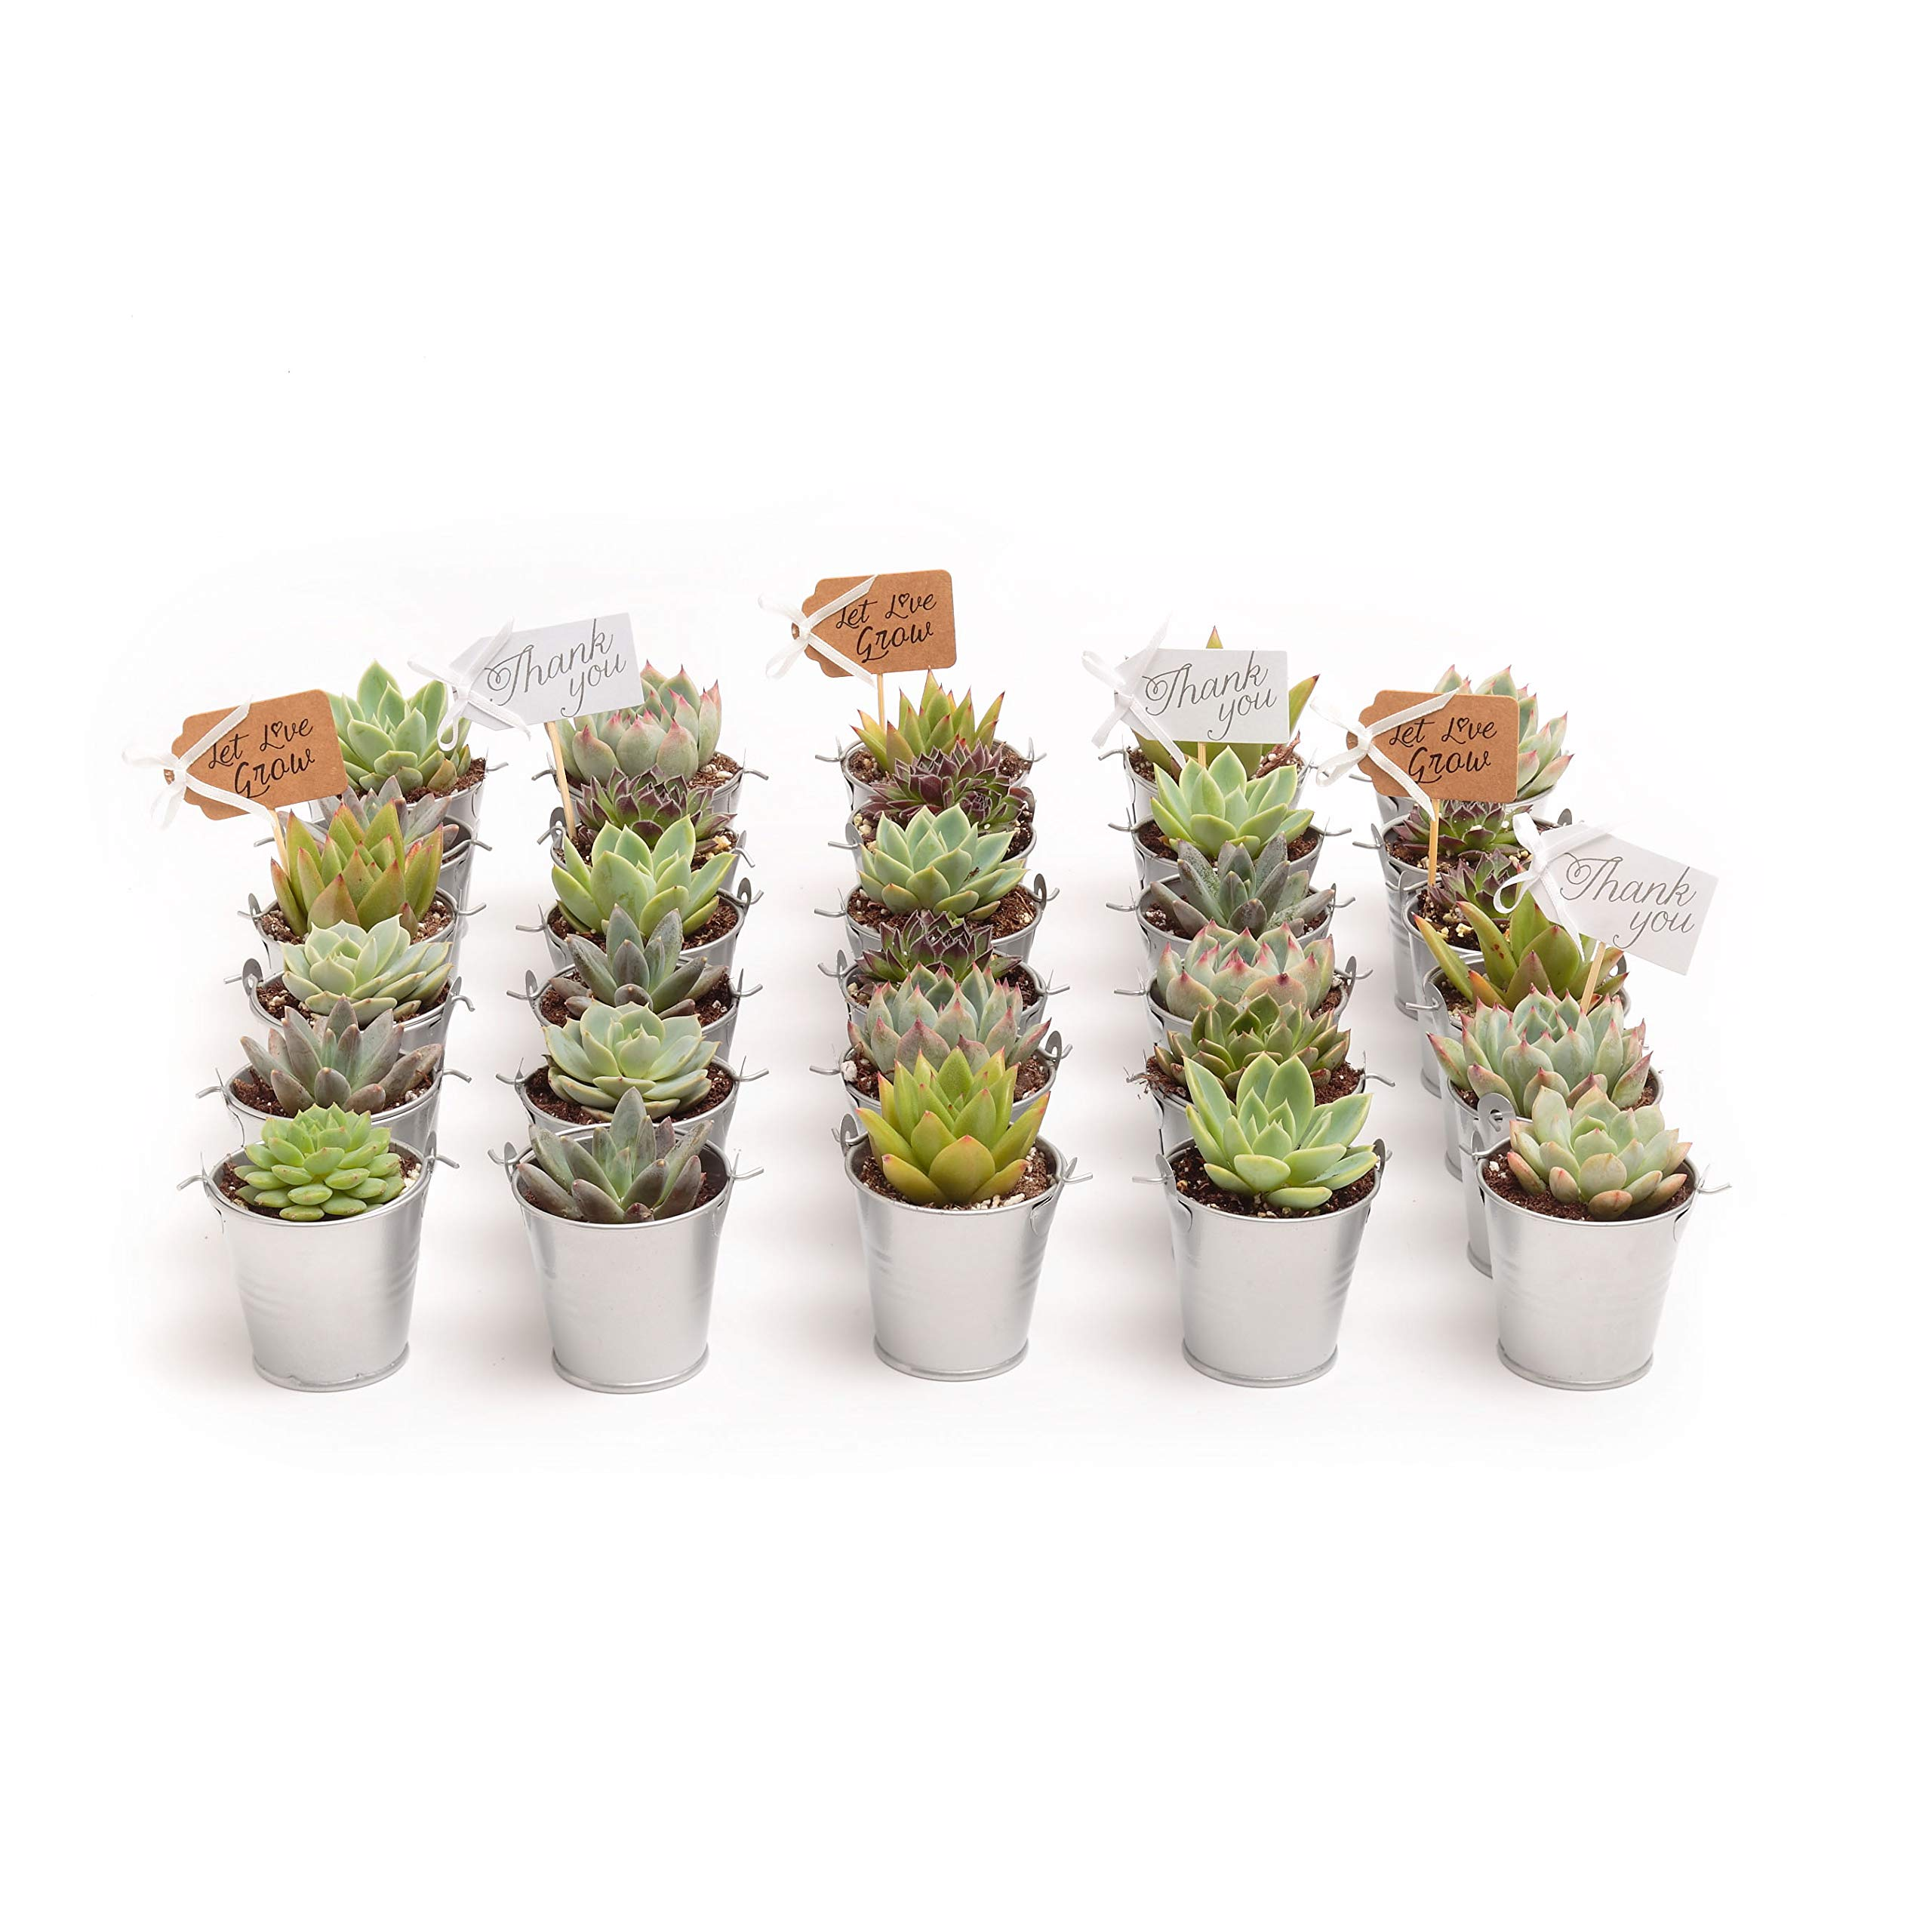 2 in. Wedding Event Rosette Succulents with Silver Metal Pails and Thank You Tags (100)